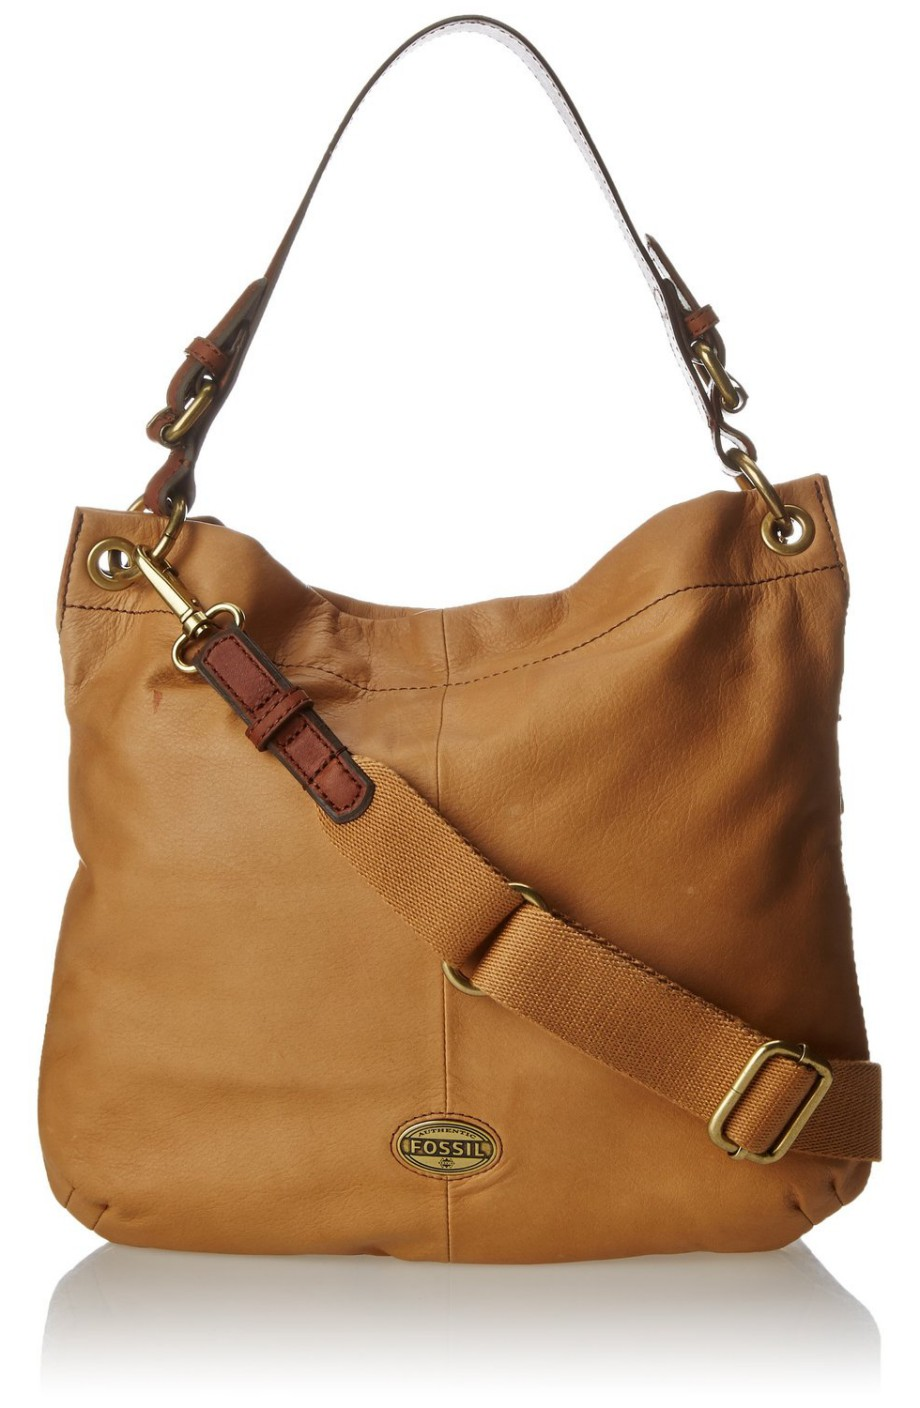 Diaper bags that look like purses